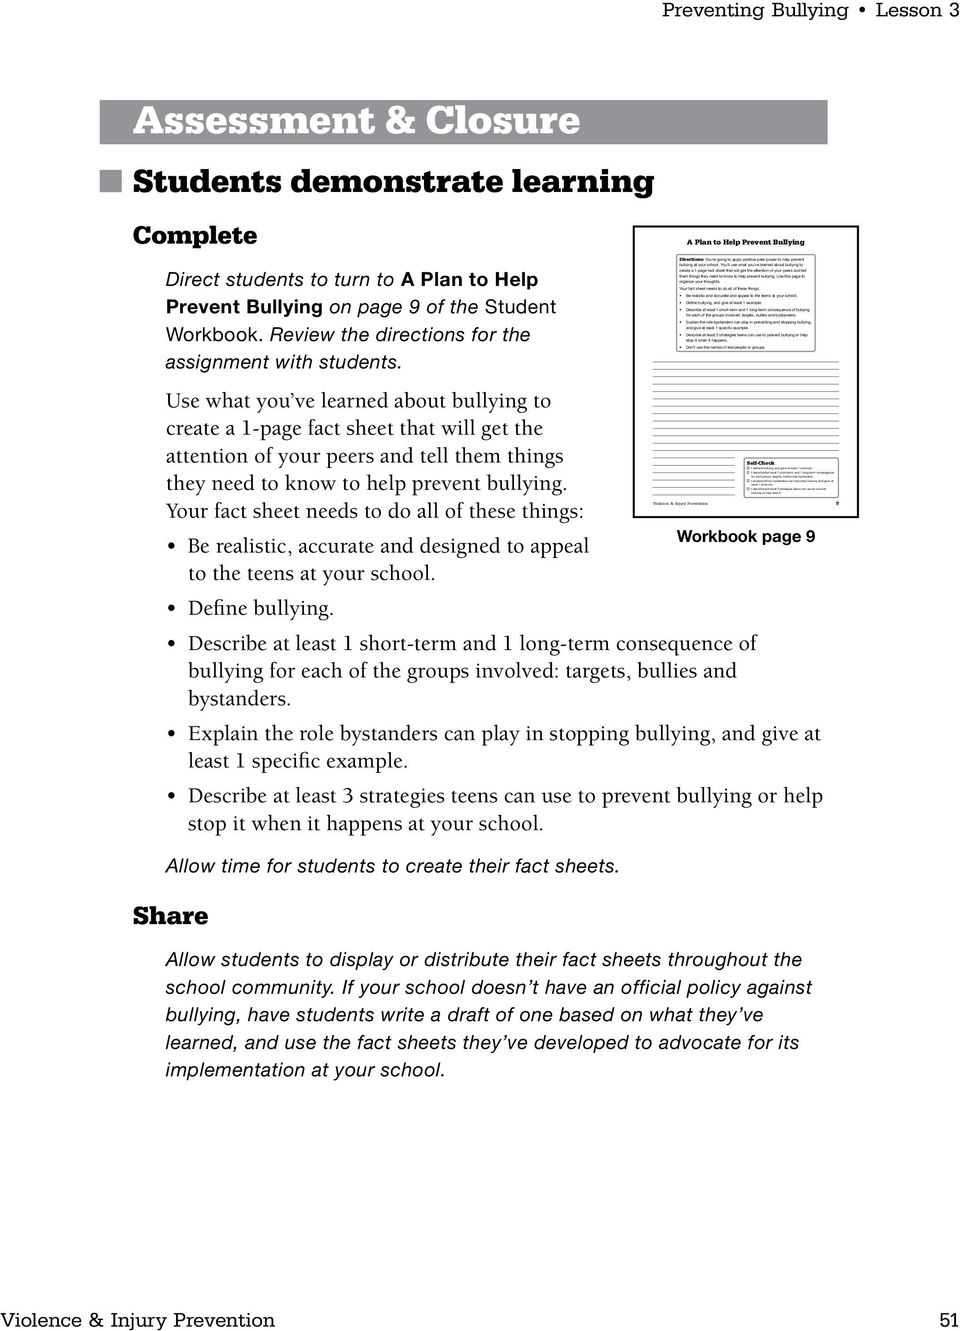 Preventing Bullying Lesson 3 Assessment & Closure Students demonstrate learning Complete Direct students to turn to A Plan to Help Prevent Bullying on page 9 of the Student Workbook.